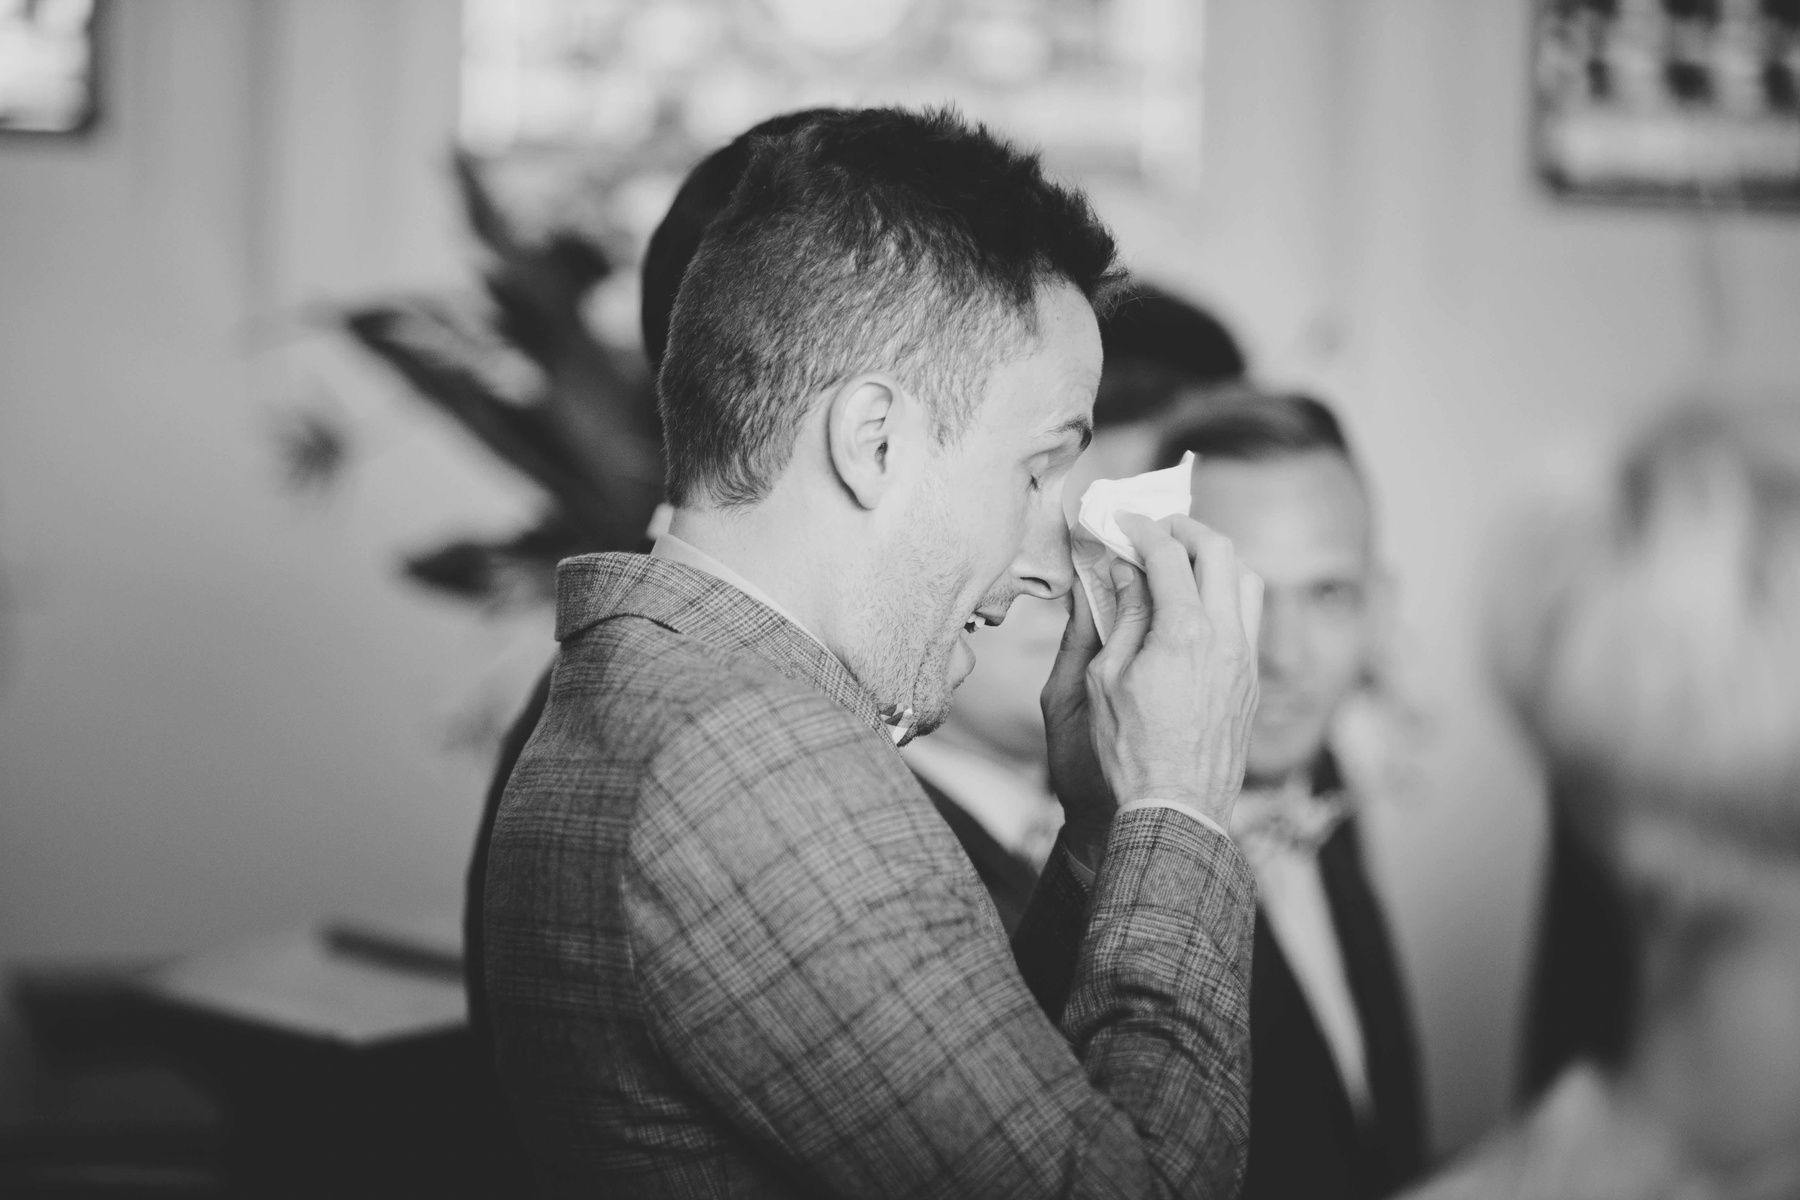 Kat Stanley Photography :: Groom :: Tears :: Black and white photography :: Wedding ceremony :: Church wedding